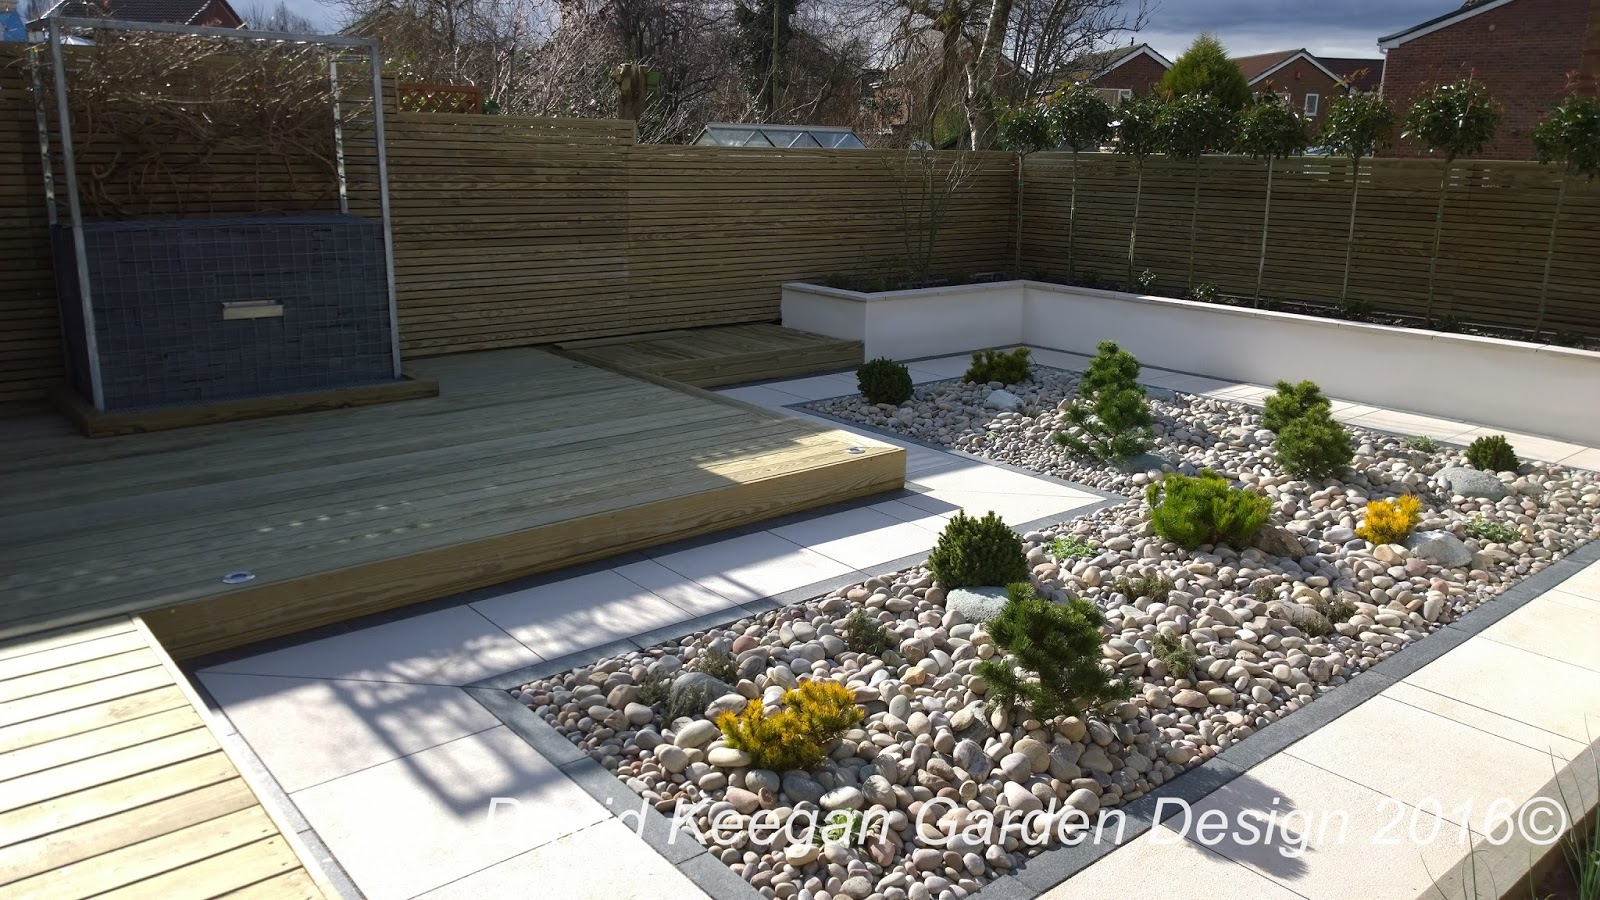 David Keegans Garden Design Blog A Small Suburban Back Garden In